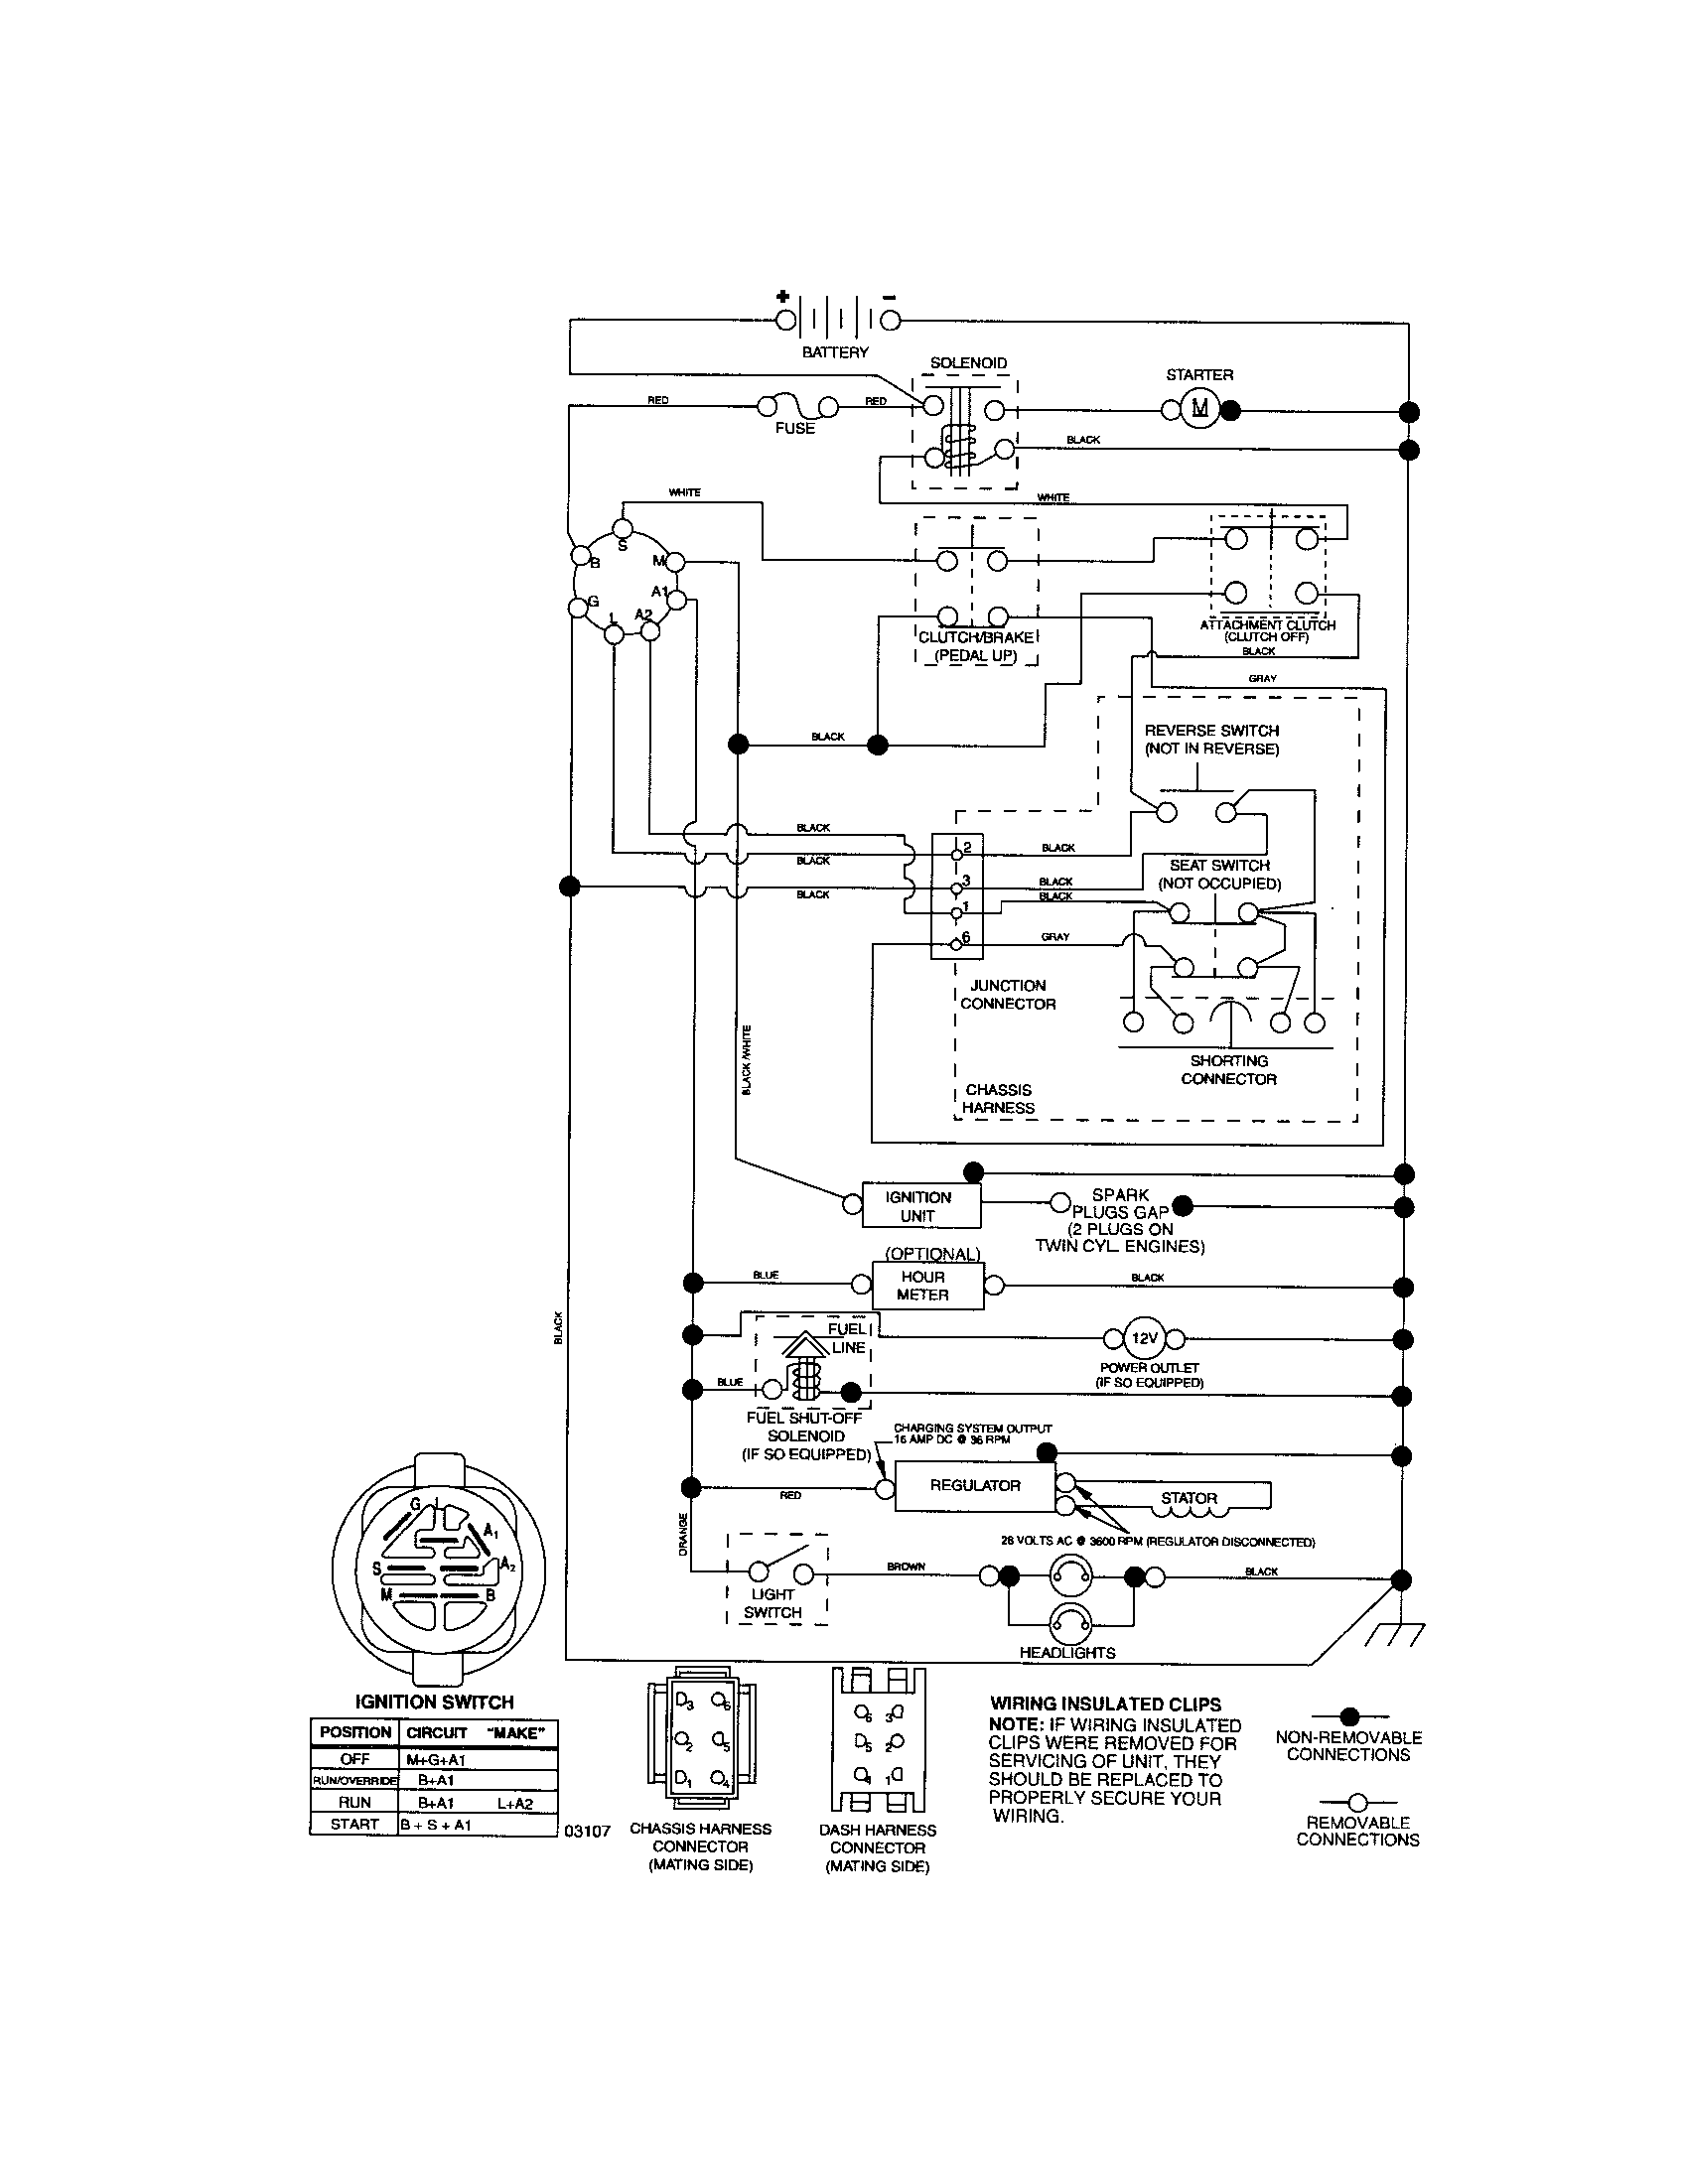 6af5f1447fd13c8443376822ddc1e105 craftsman riding mower electrical diagram wiring diagram tractor ignition switch wiring diagram at edmiracle.co